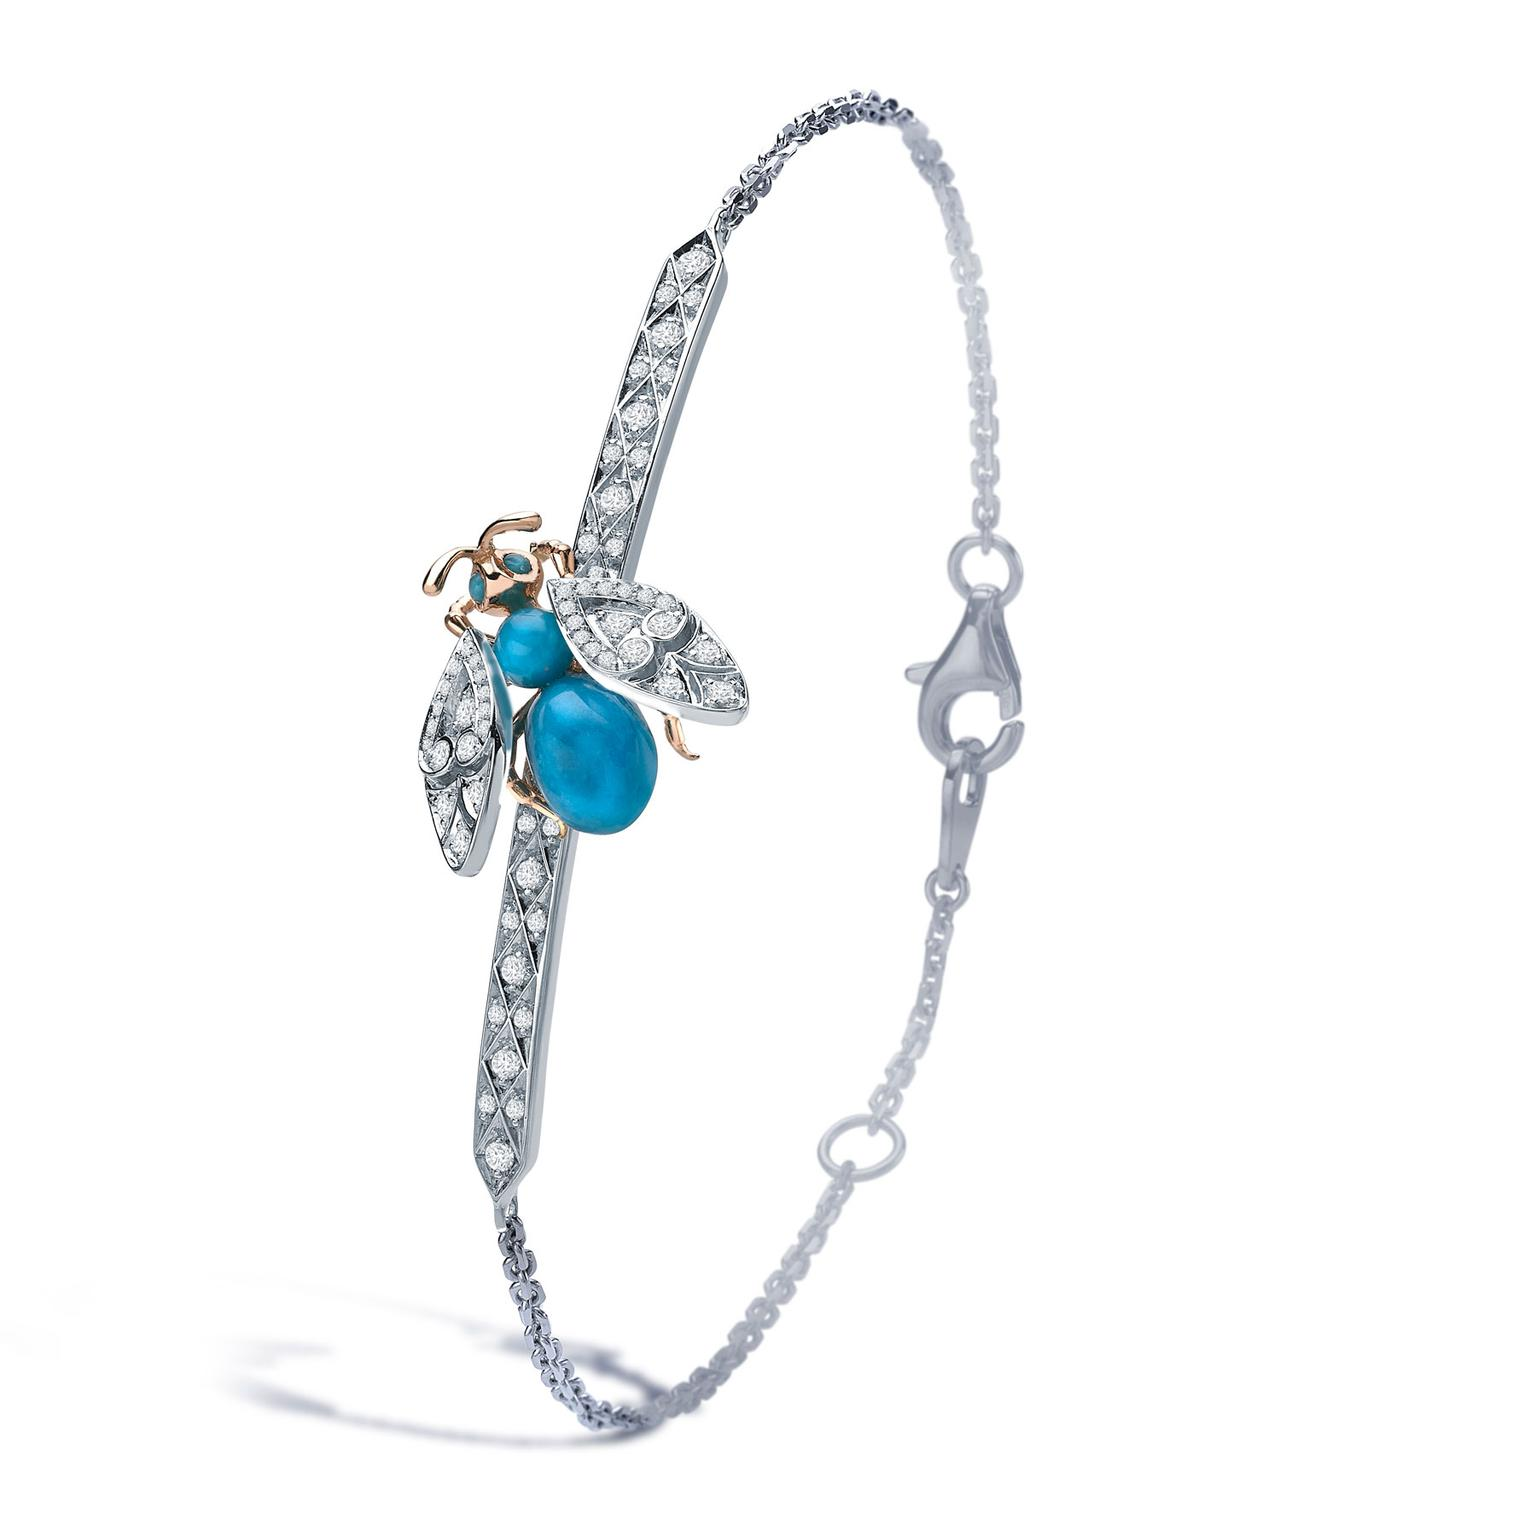 Garrard Enchanted Palace Jewelled Bug turquoise bracelet